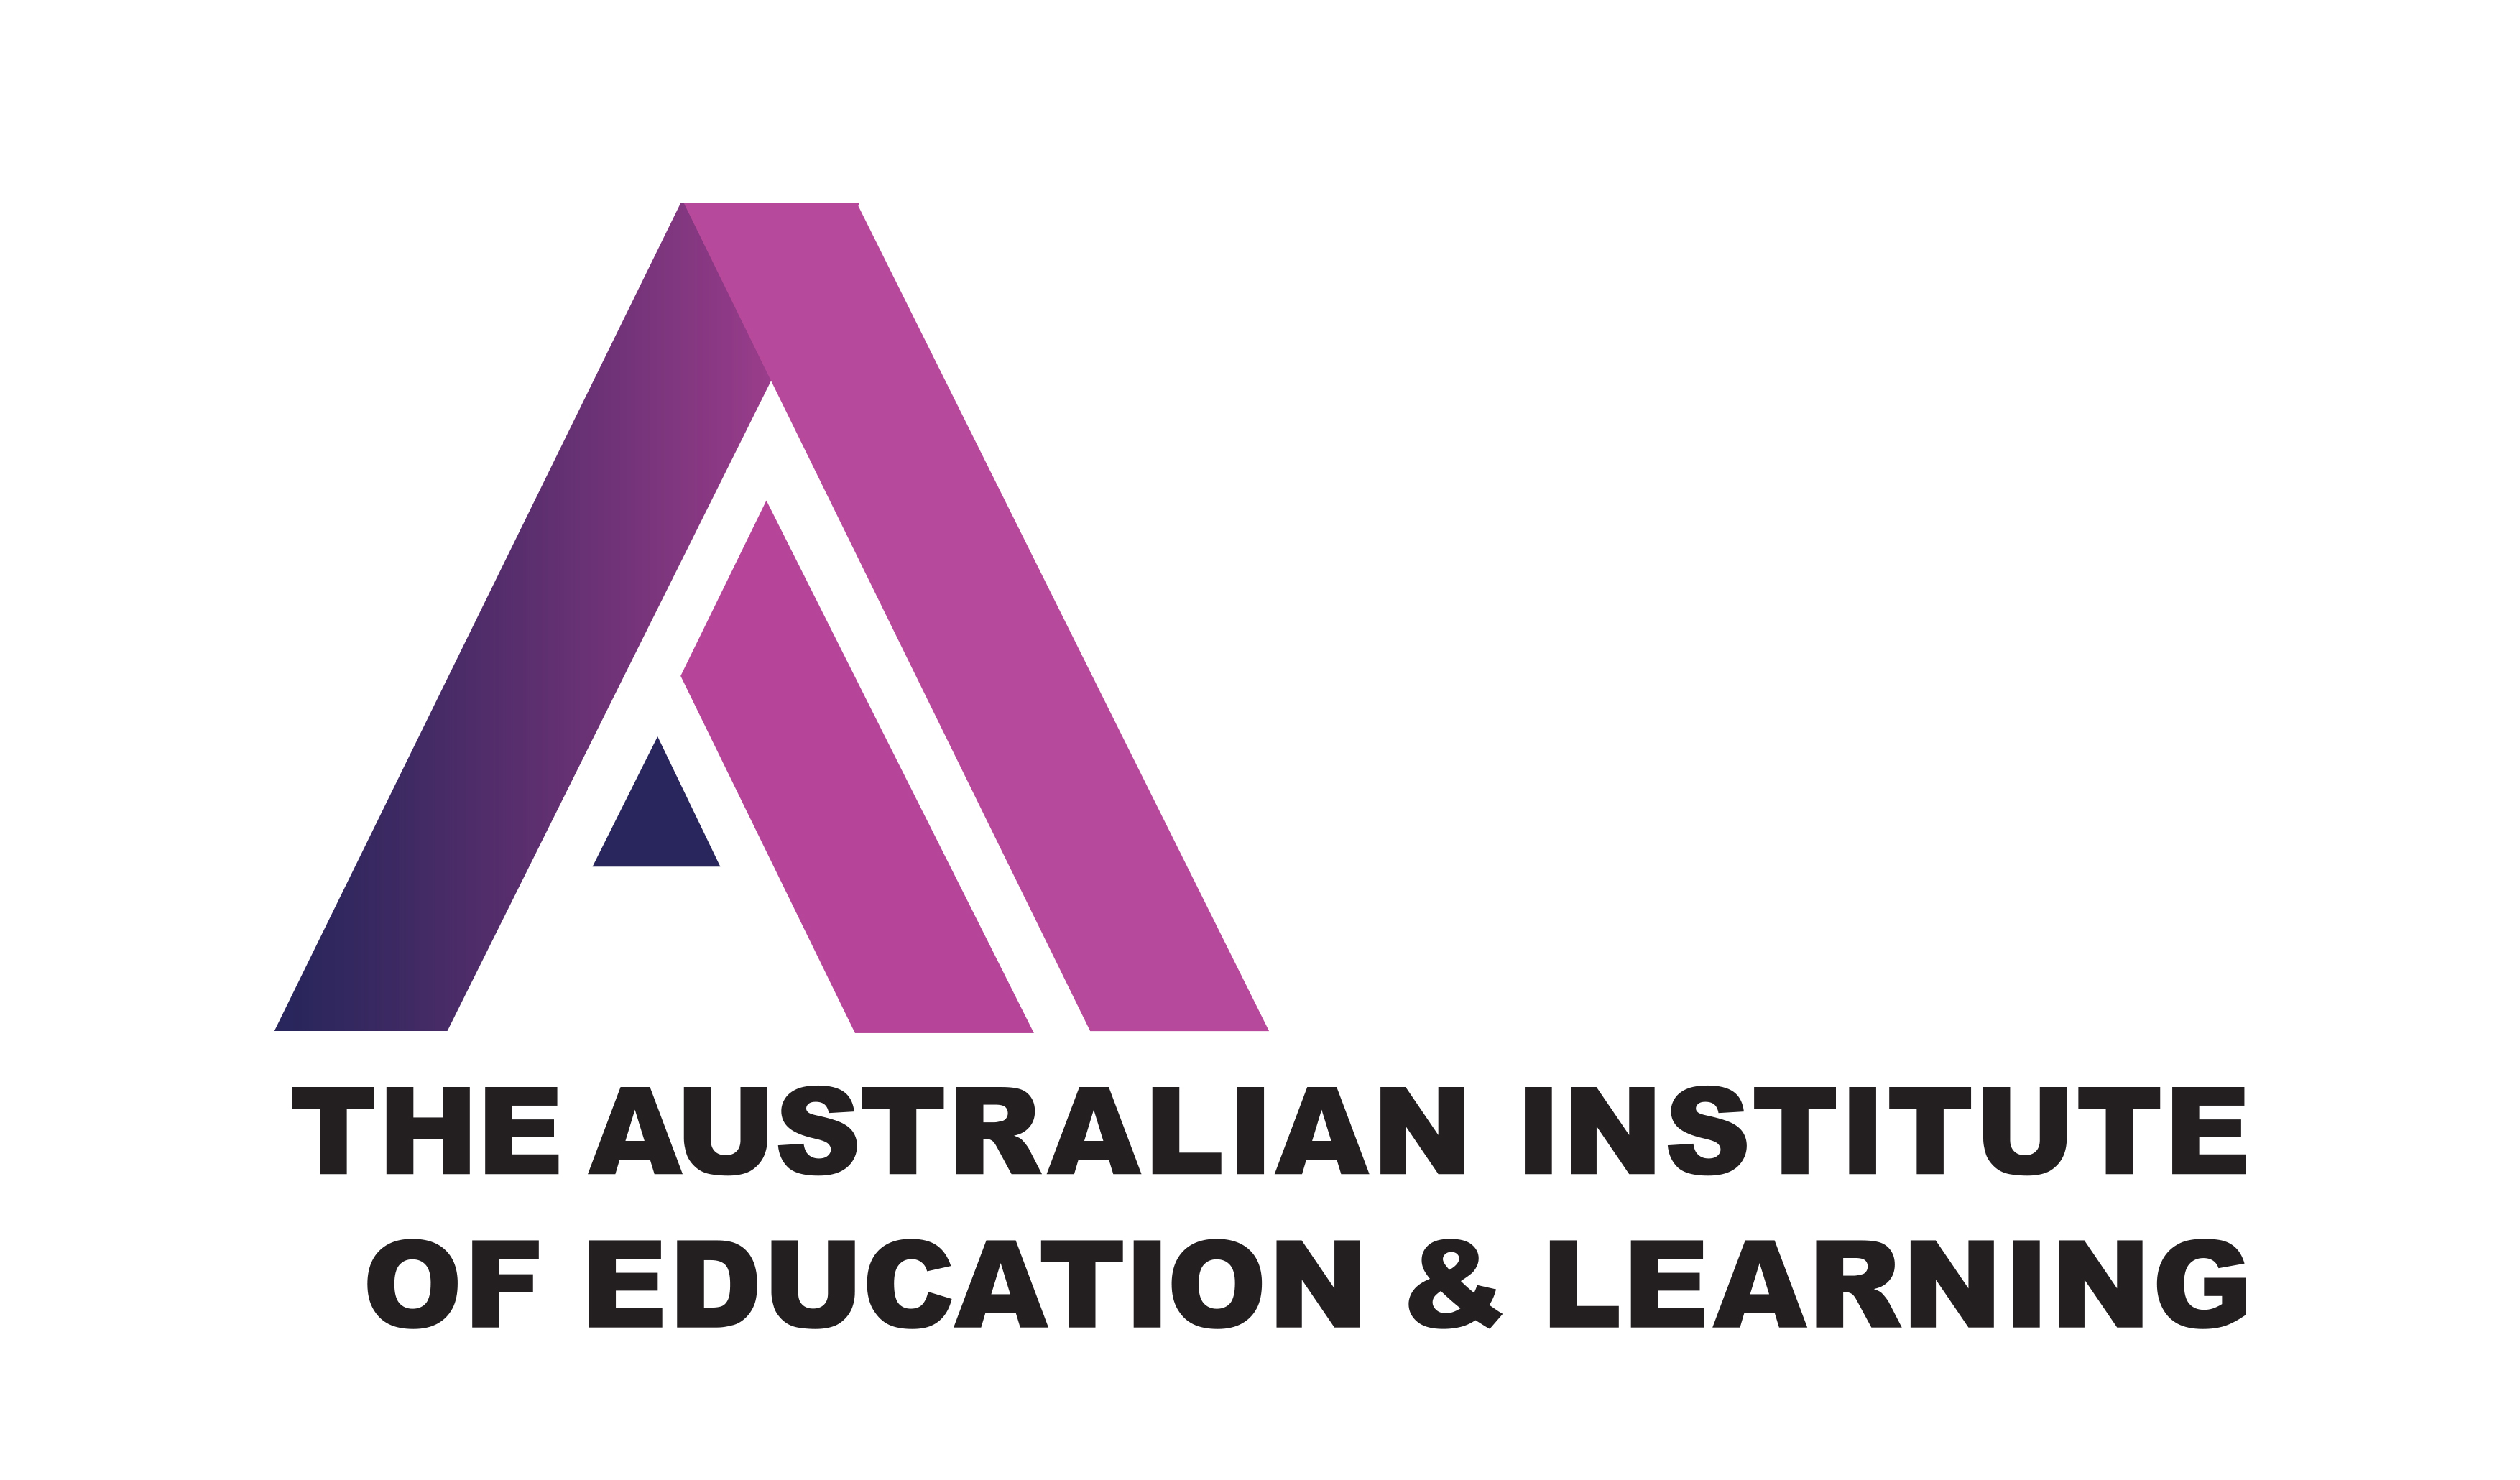 AUSTRALIAN INSTITUTE OF EDUCATION AND LEARNING